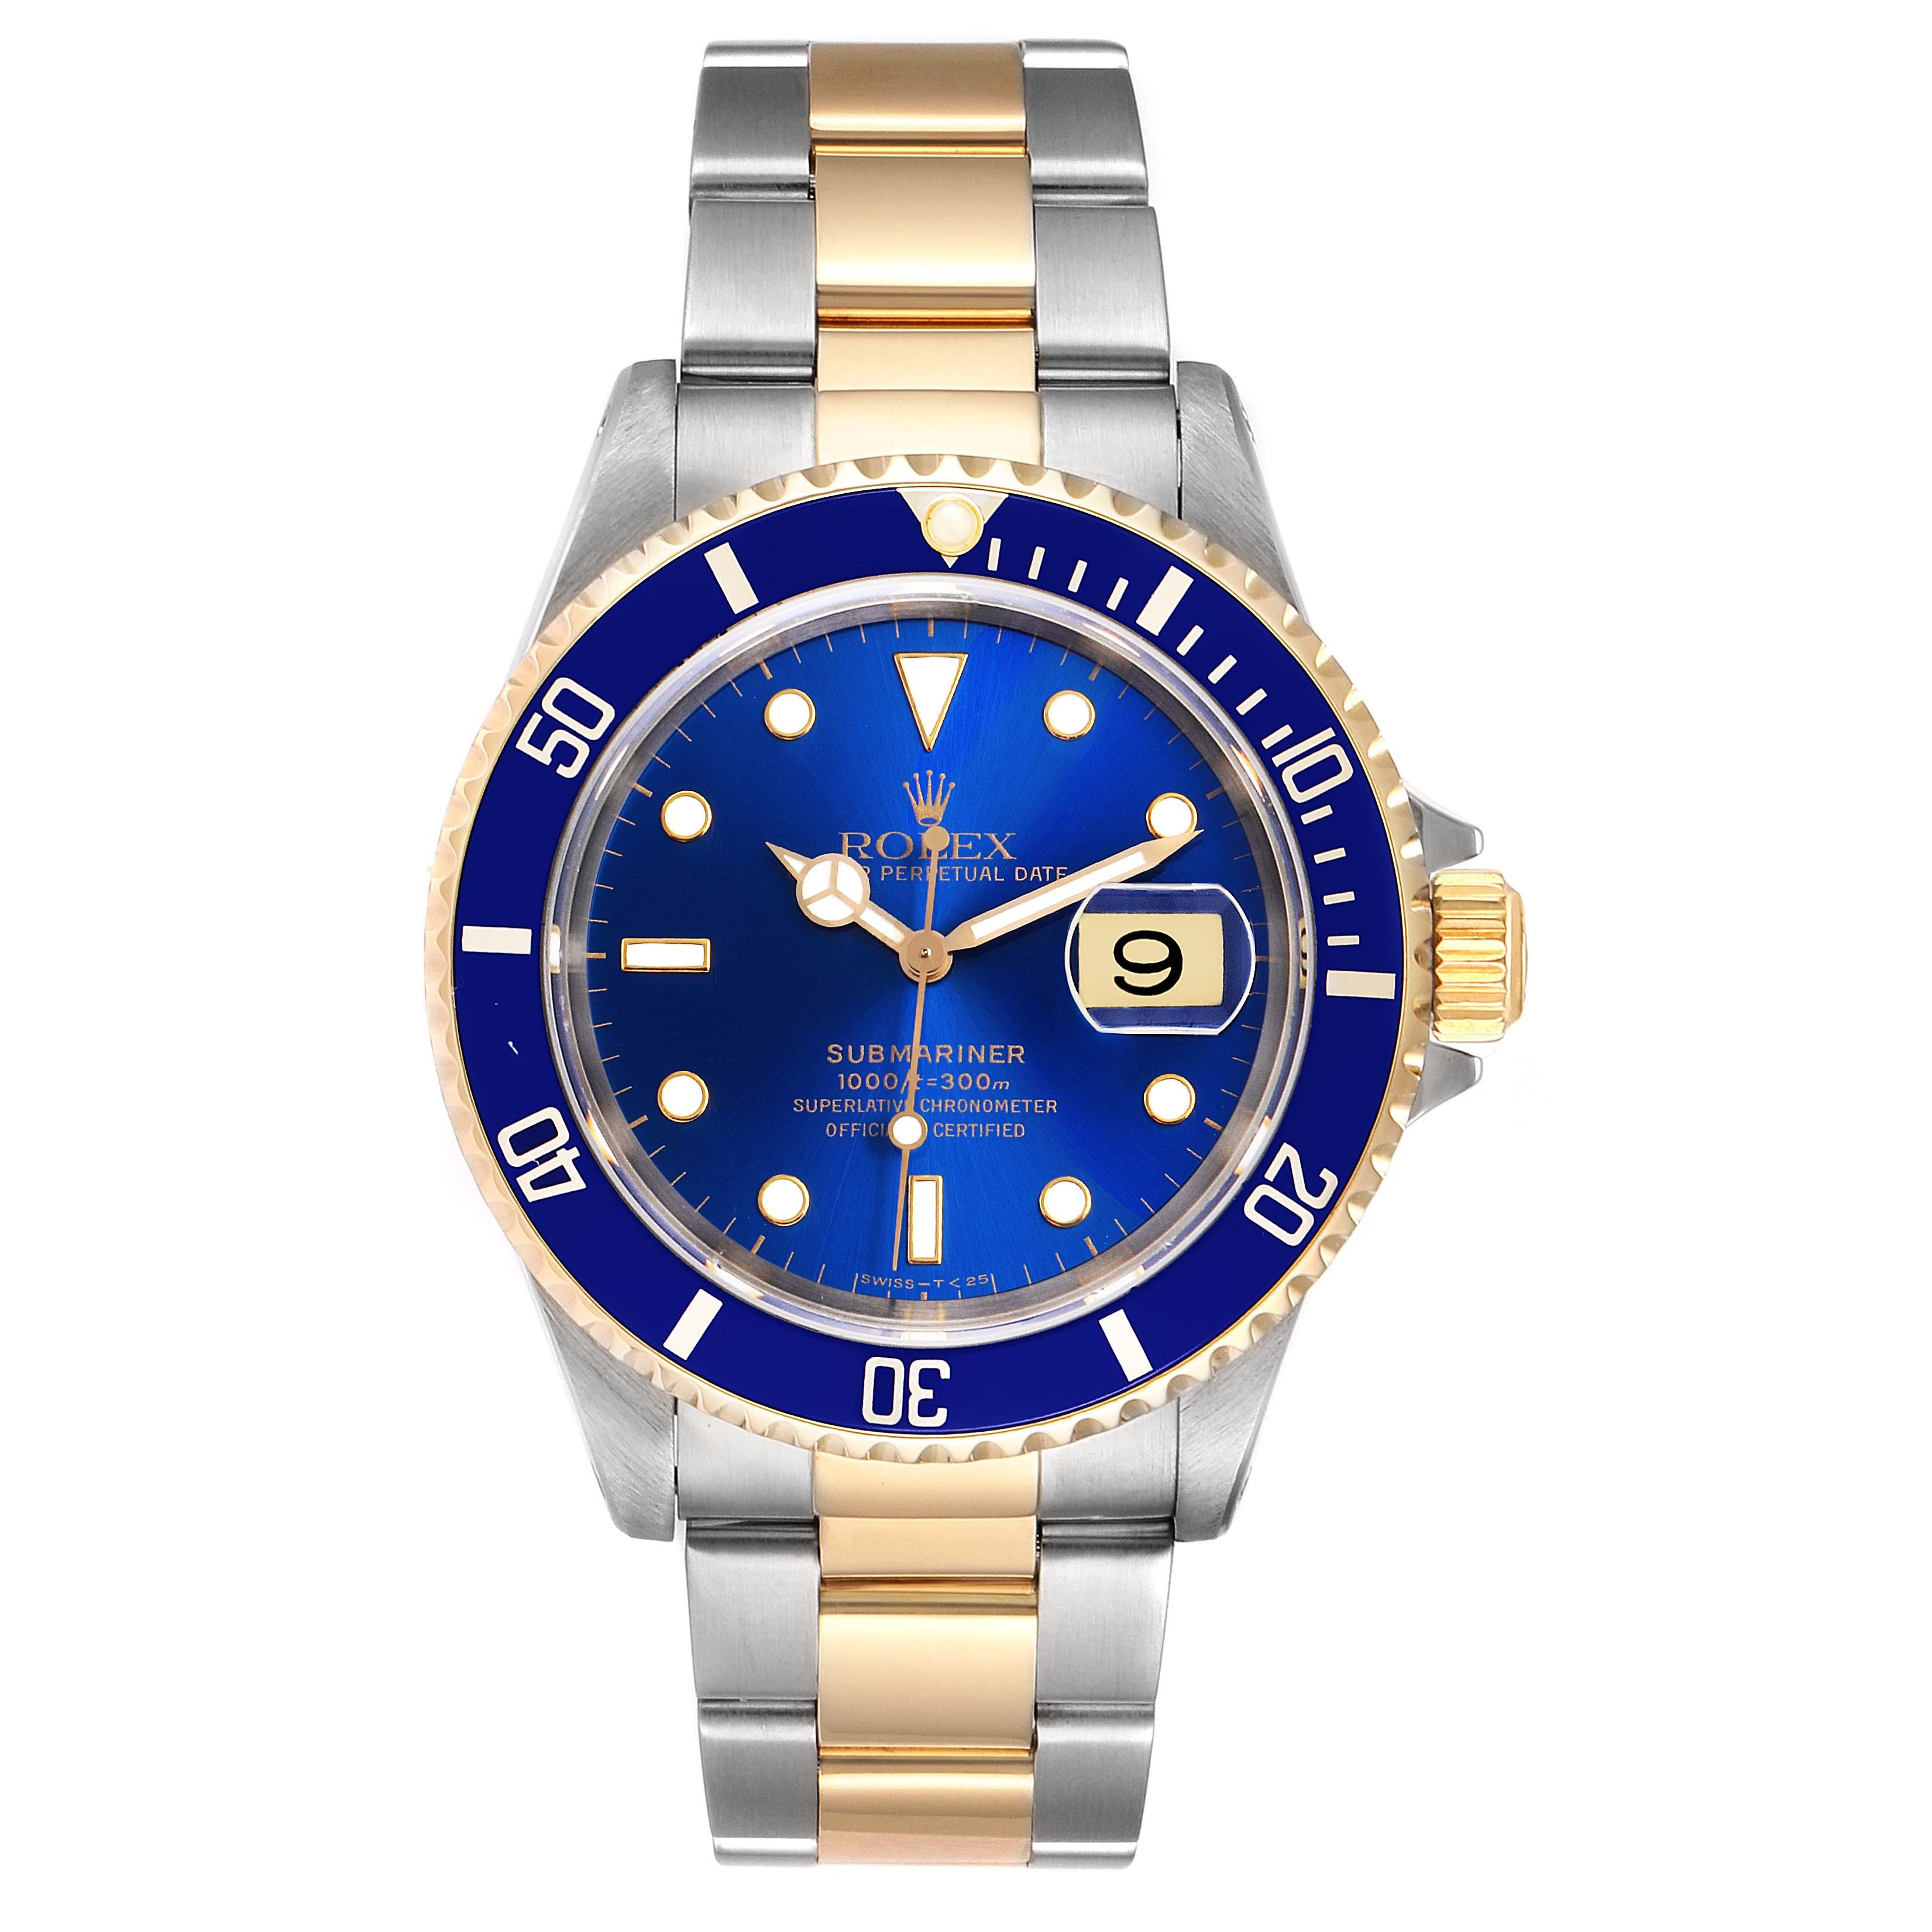 Rolex Submariner Purple Blue Dial Steel Yellow Gold Mens Watch 16613 Box Papers SwissWatchExpo